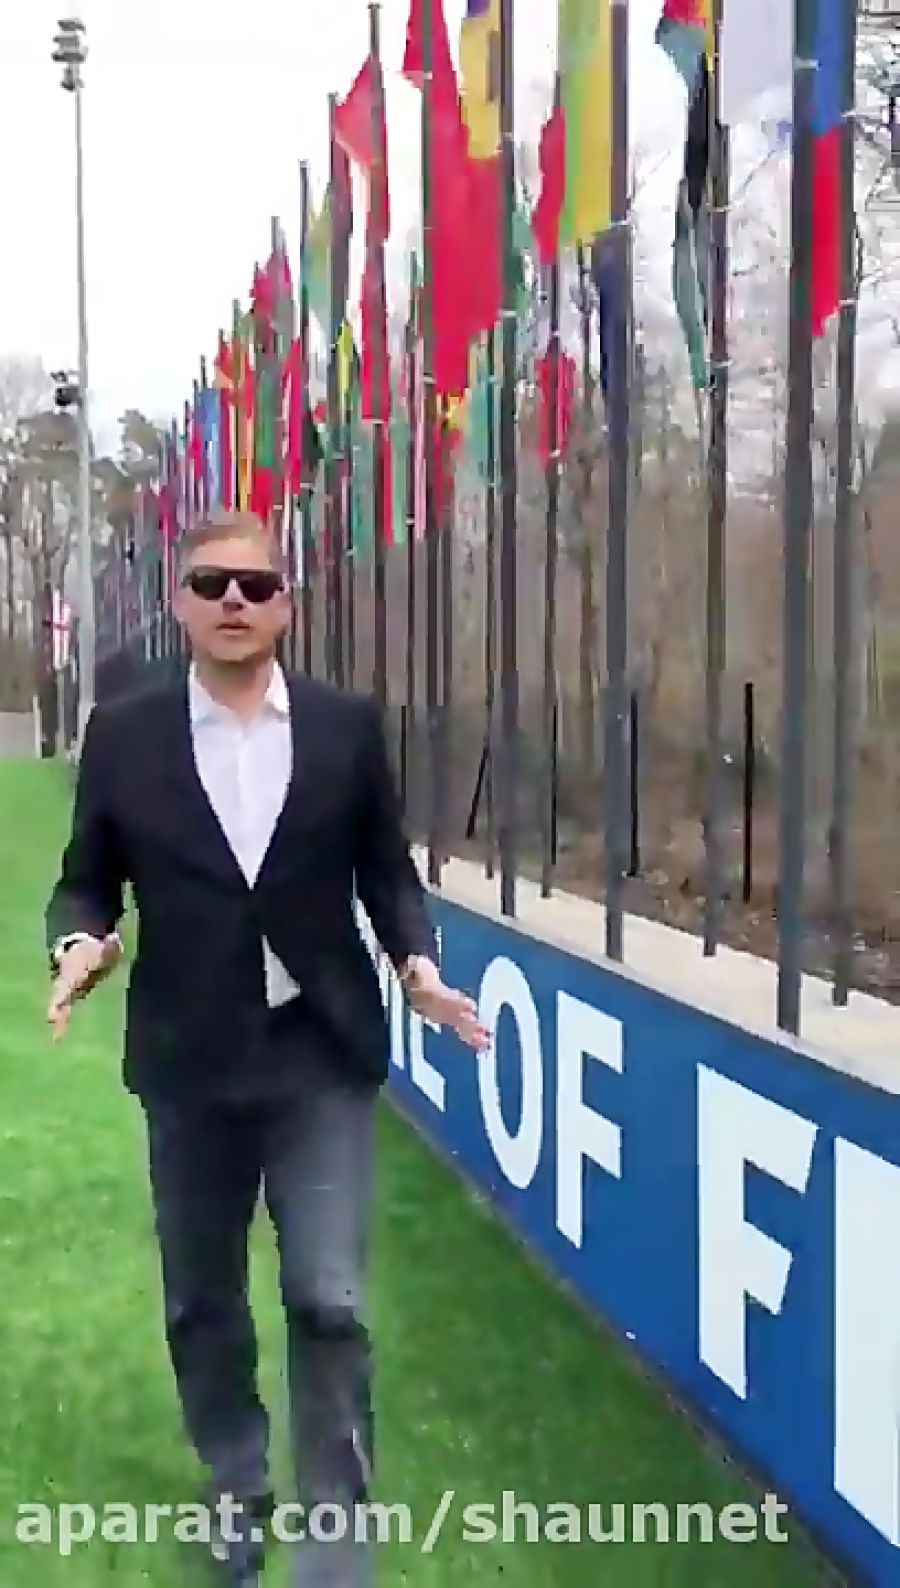 The Peter Schmeichel Show: 'It's safe to go to Russia' - FIFA President Infantino (PROMO)